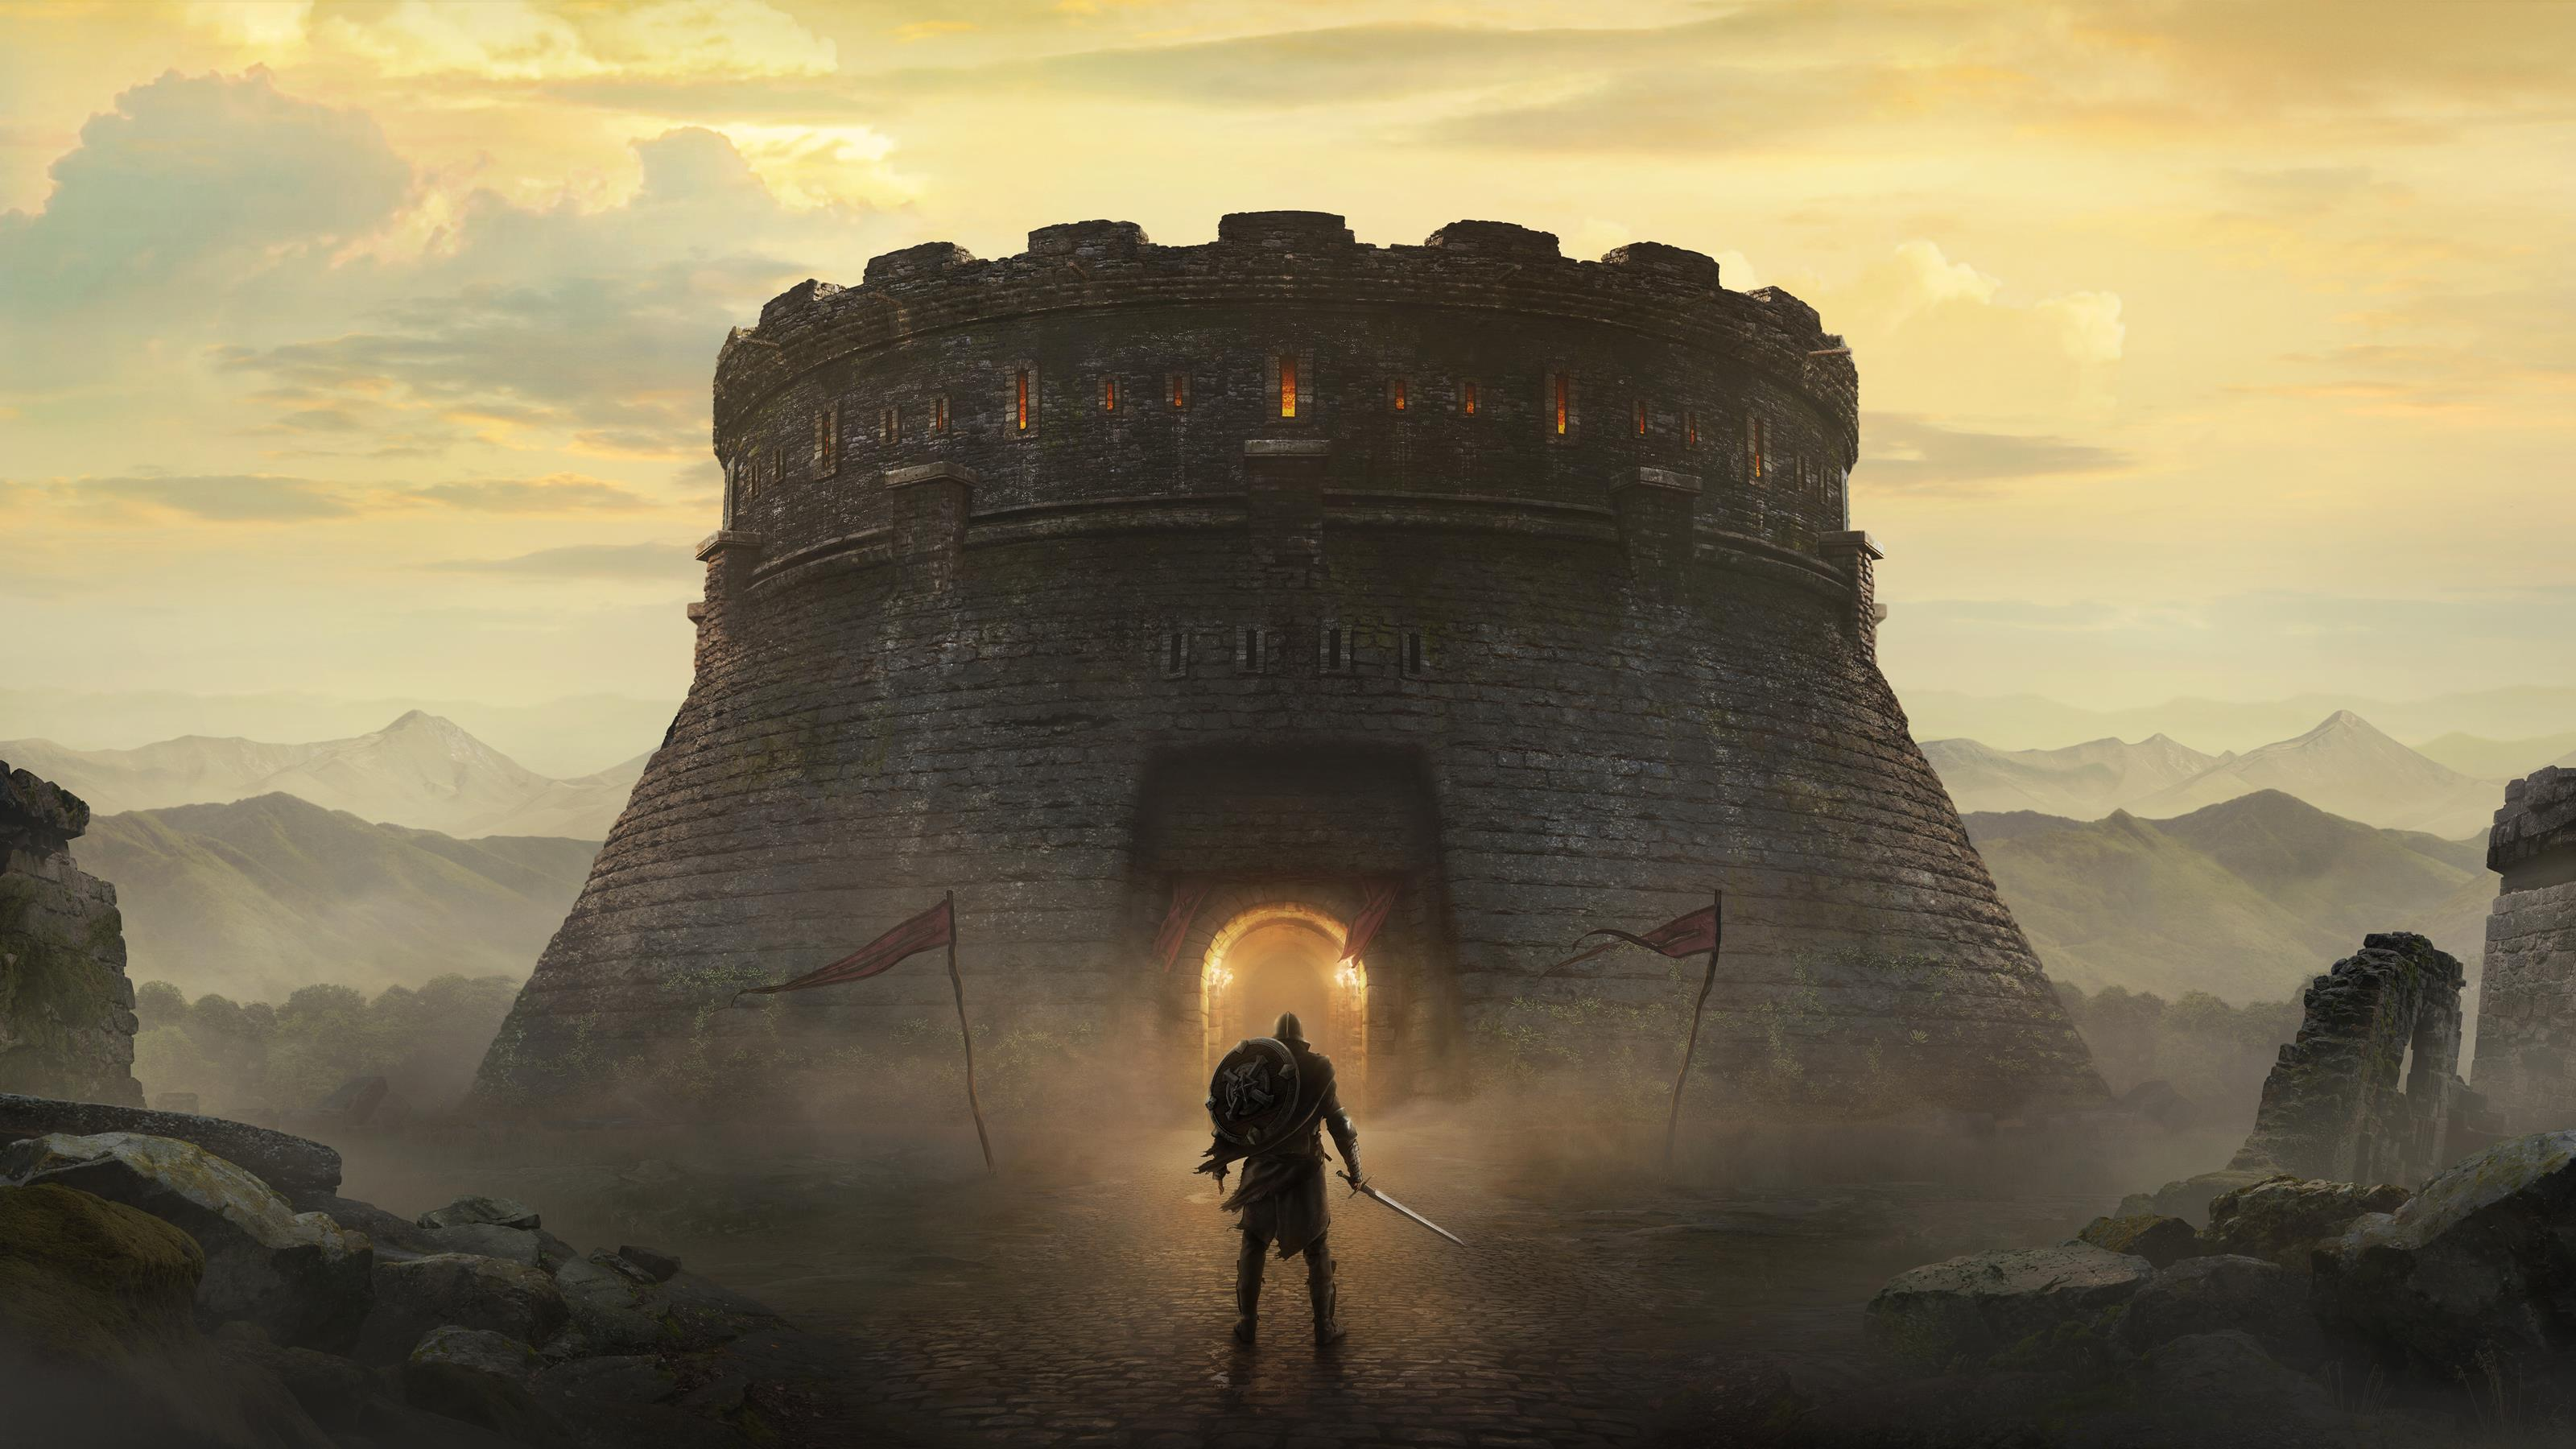 The Elder Scrolls: Blades has been delayed to 2019